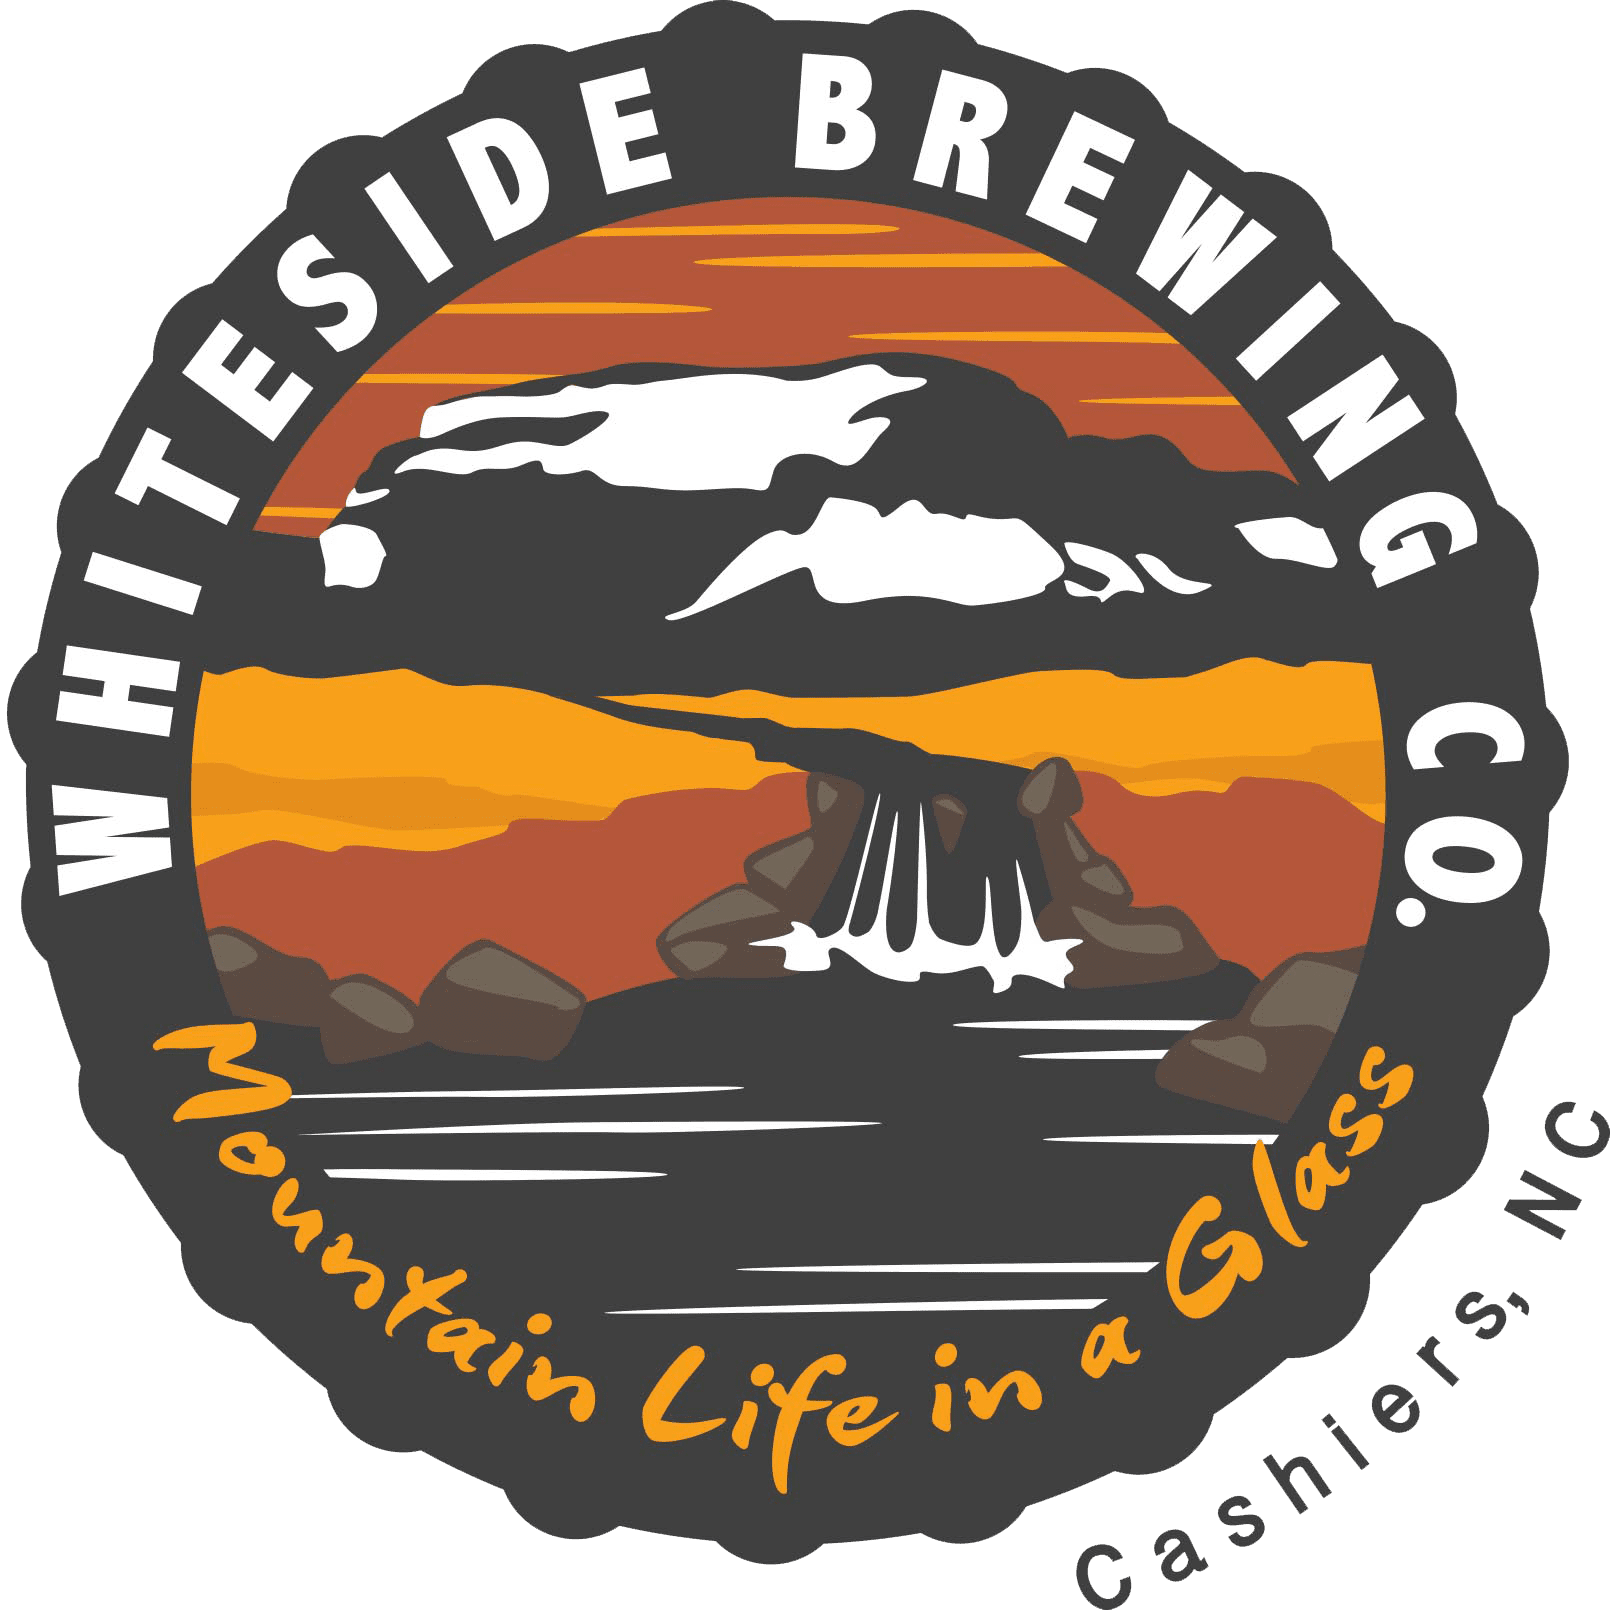 Whiteside Brewing